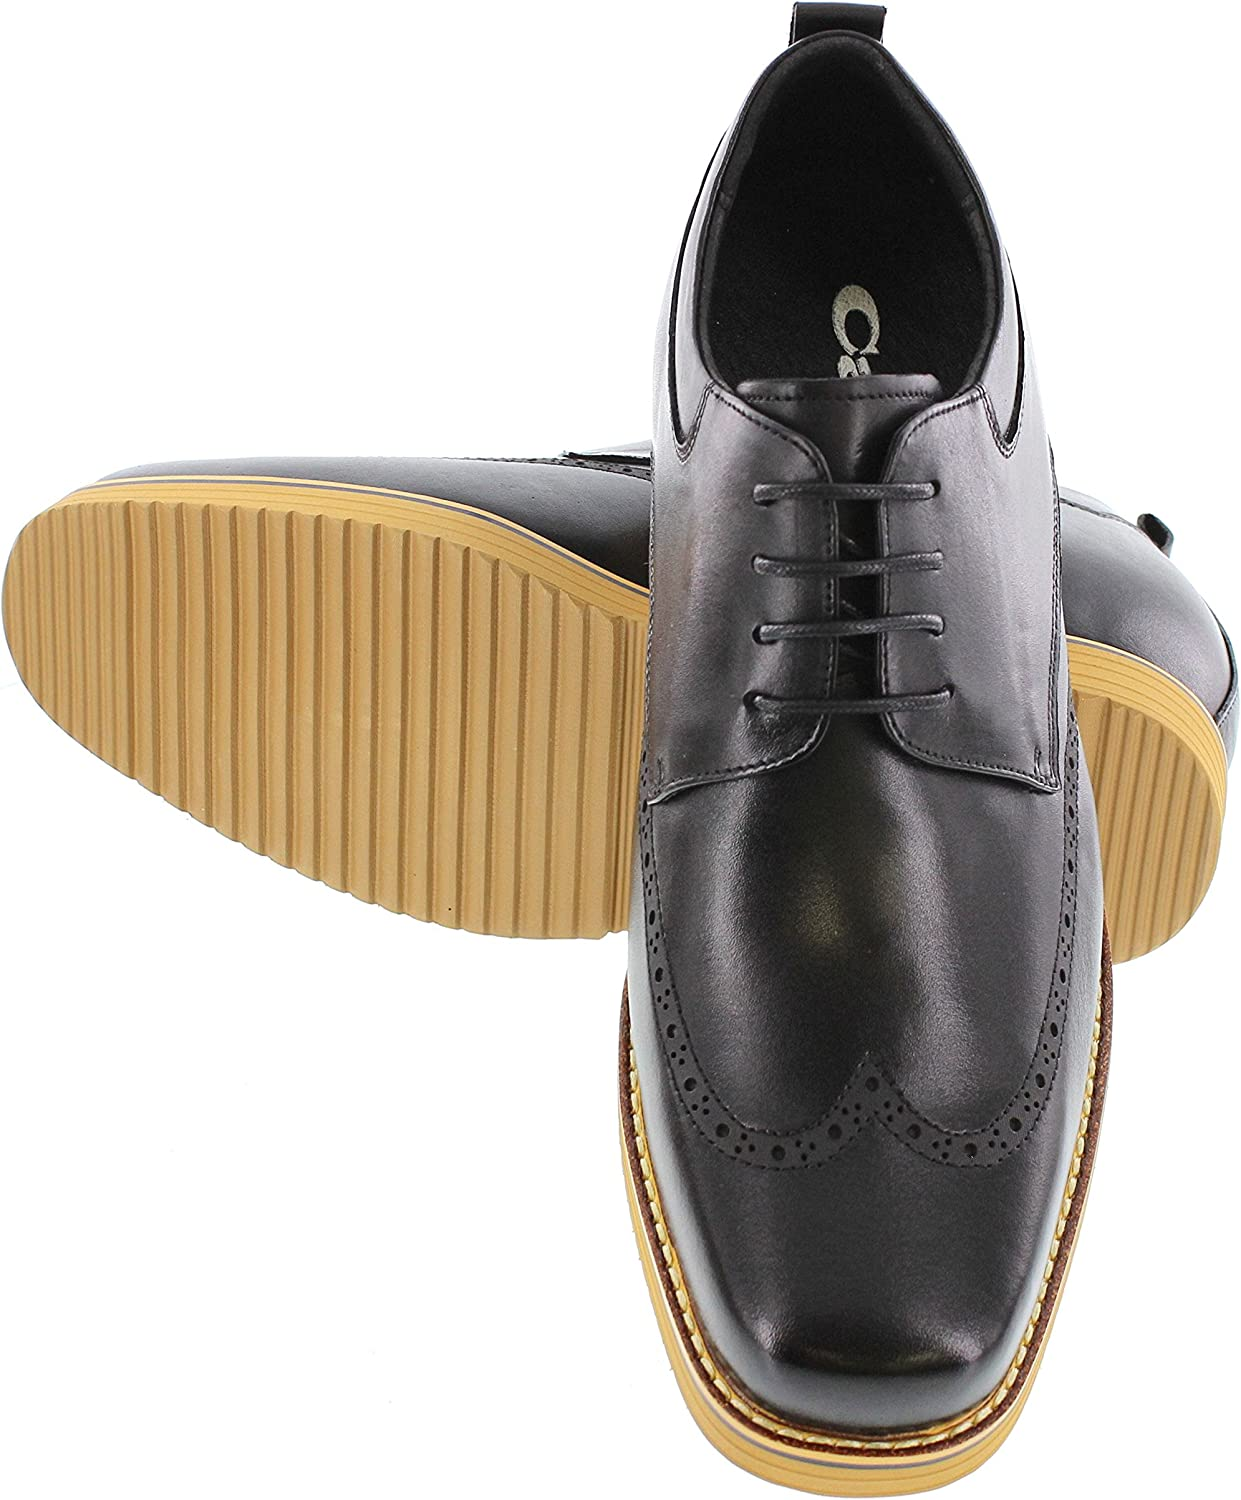 CALTO Men's Invisible Height Increasing Elevator Shoes - Black Premium Leather Wing-tip Lace-up Casual Oxfords - 3.2 Inches Taller - T1433